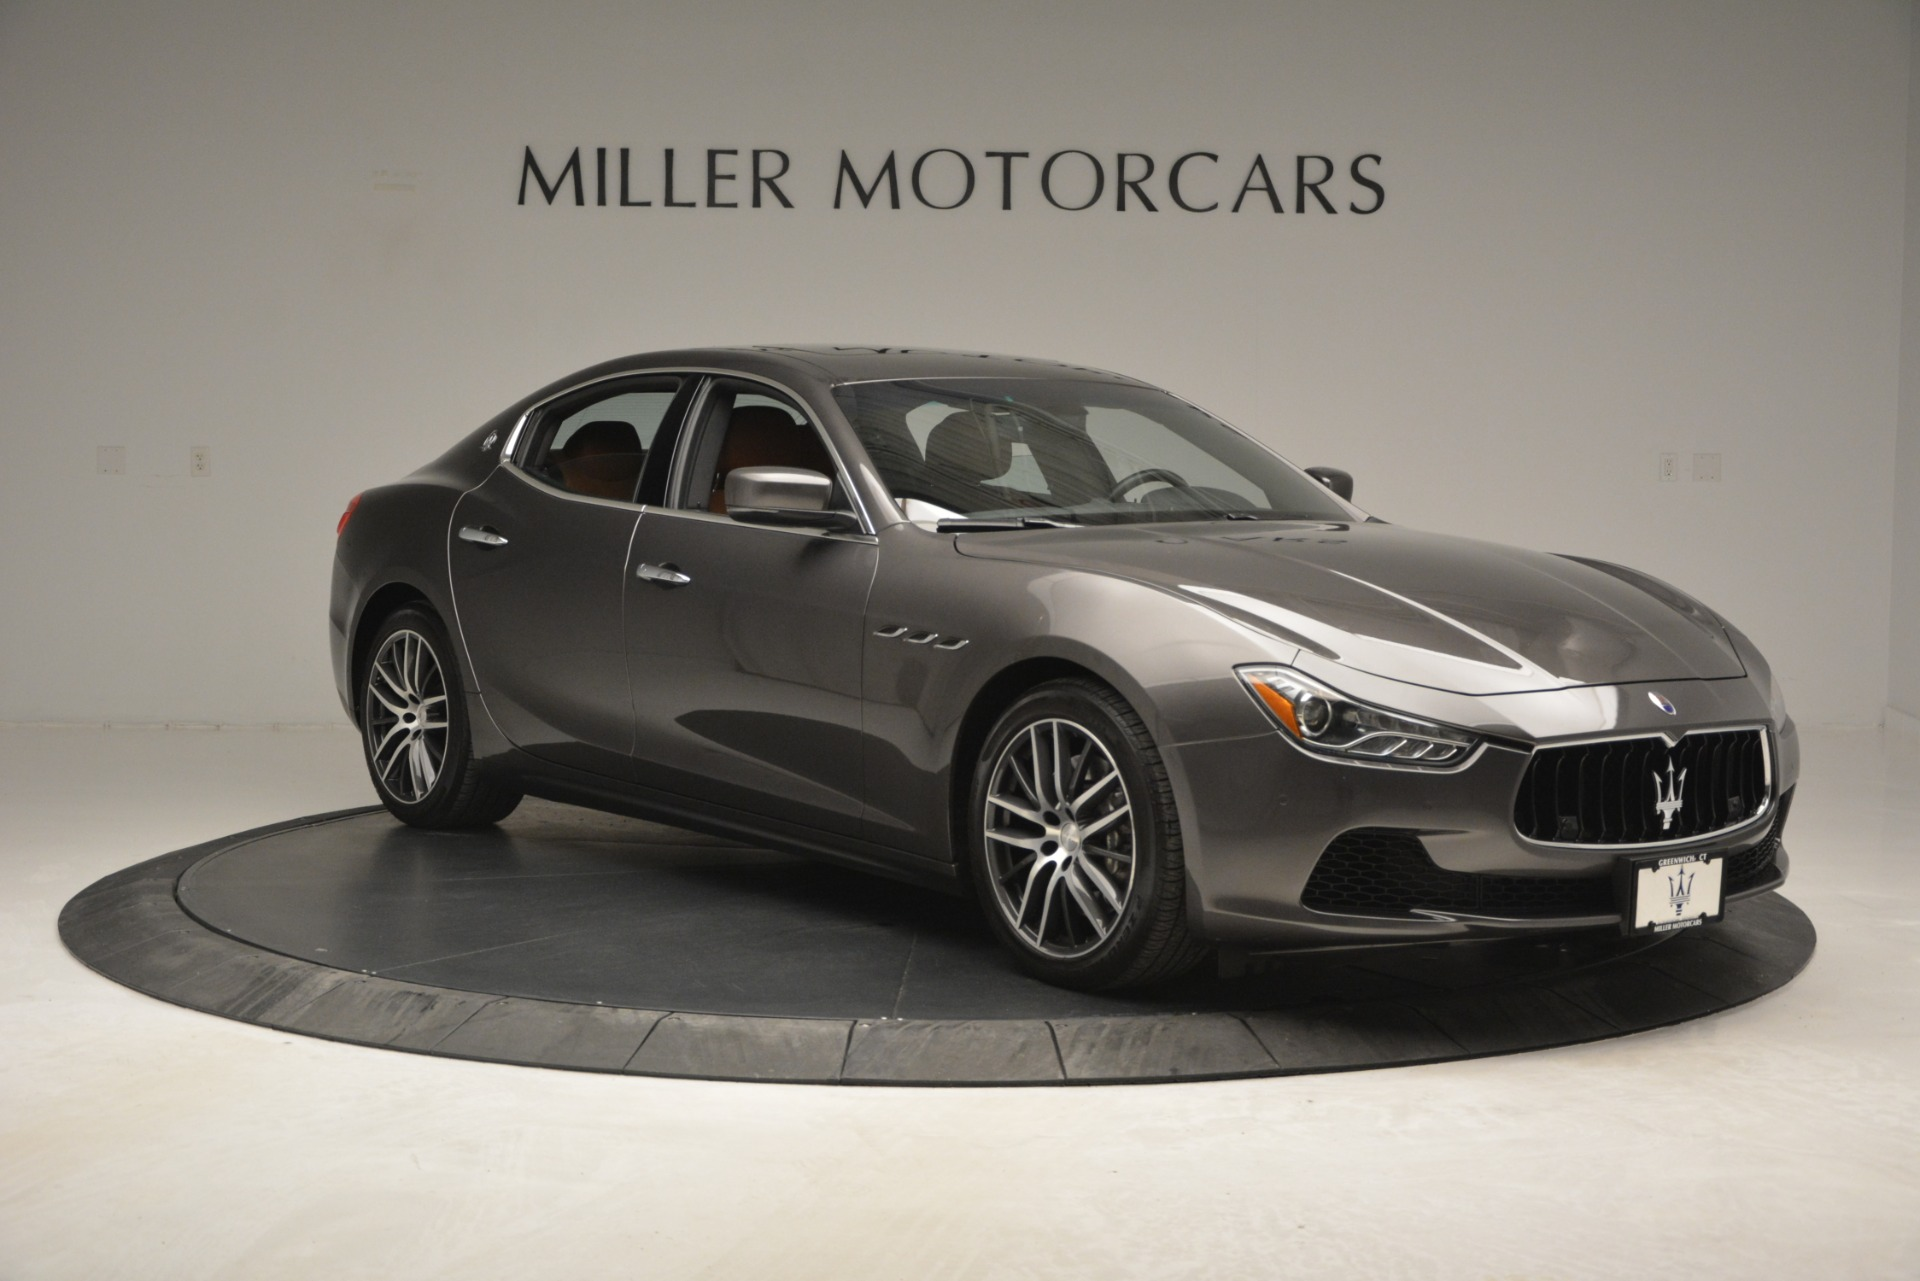 Used 2015 Maserati Ghibli S Q4 For Sale In Greenwich, CT. Alfa Romeo of Greenwich, 7483 2941_p12